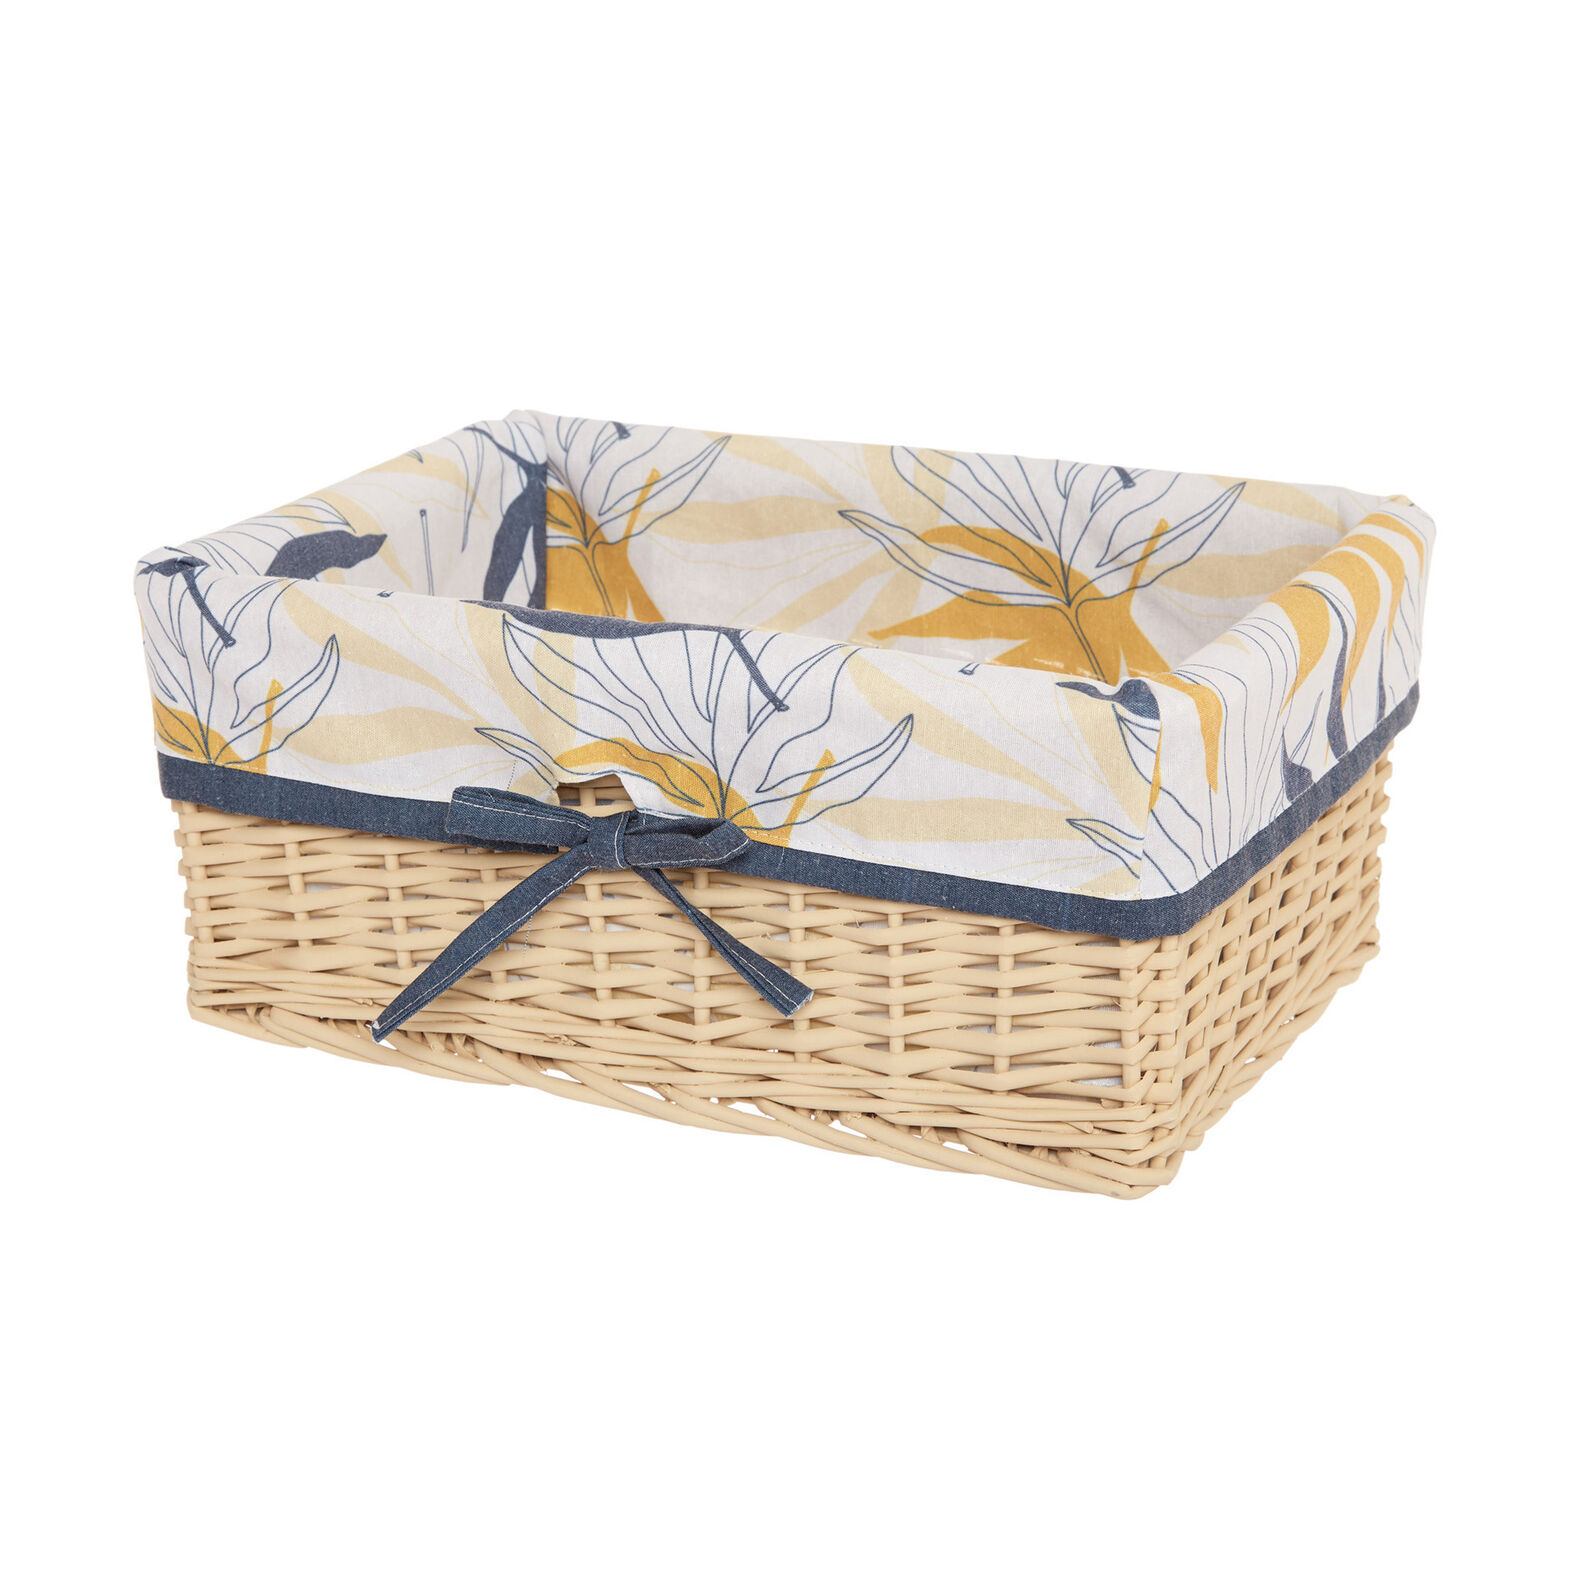 Basket in wood and fabric